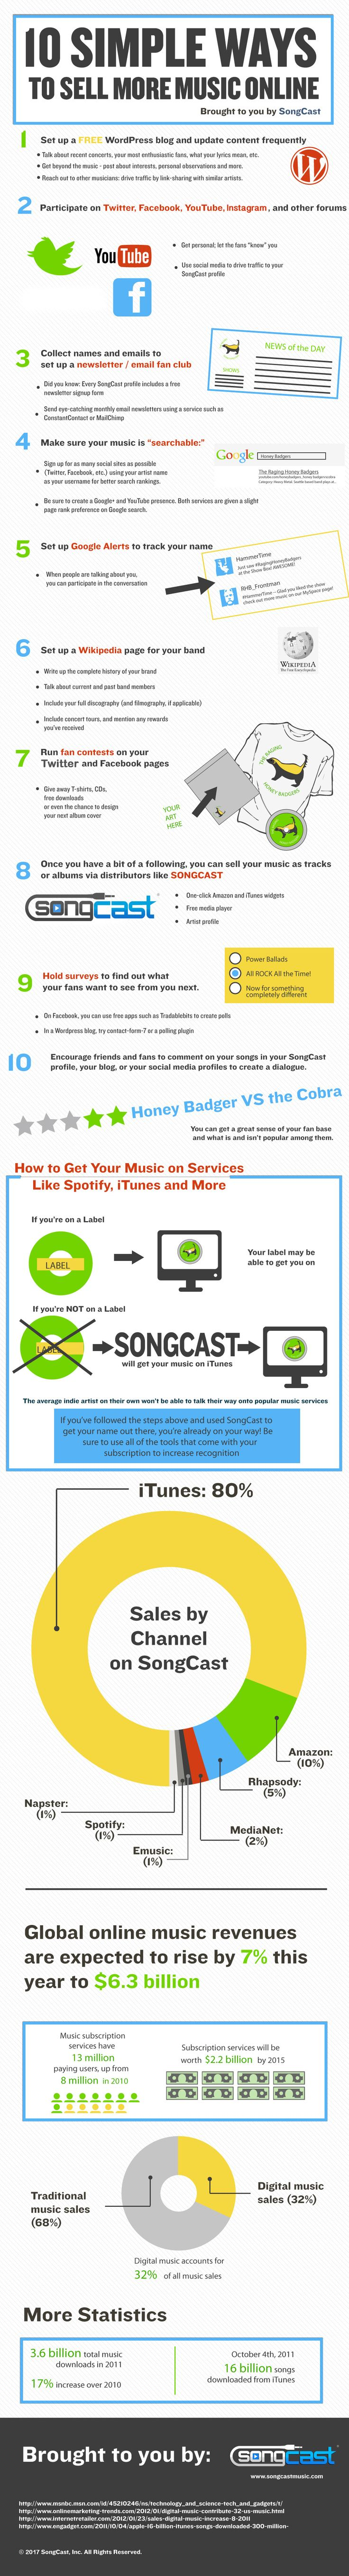 SongCast Music Helps You Sell More Music line